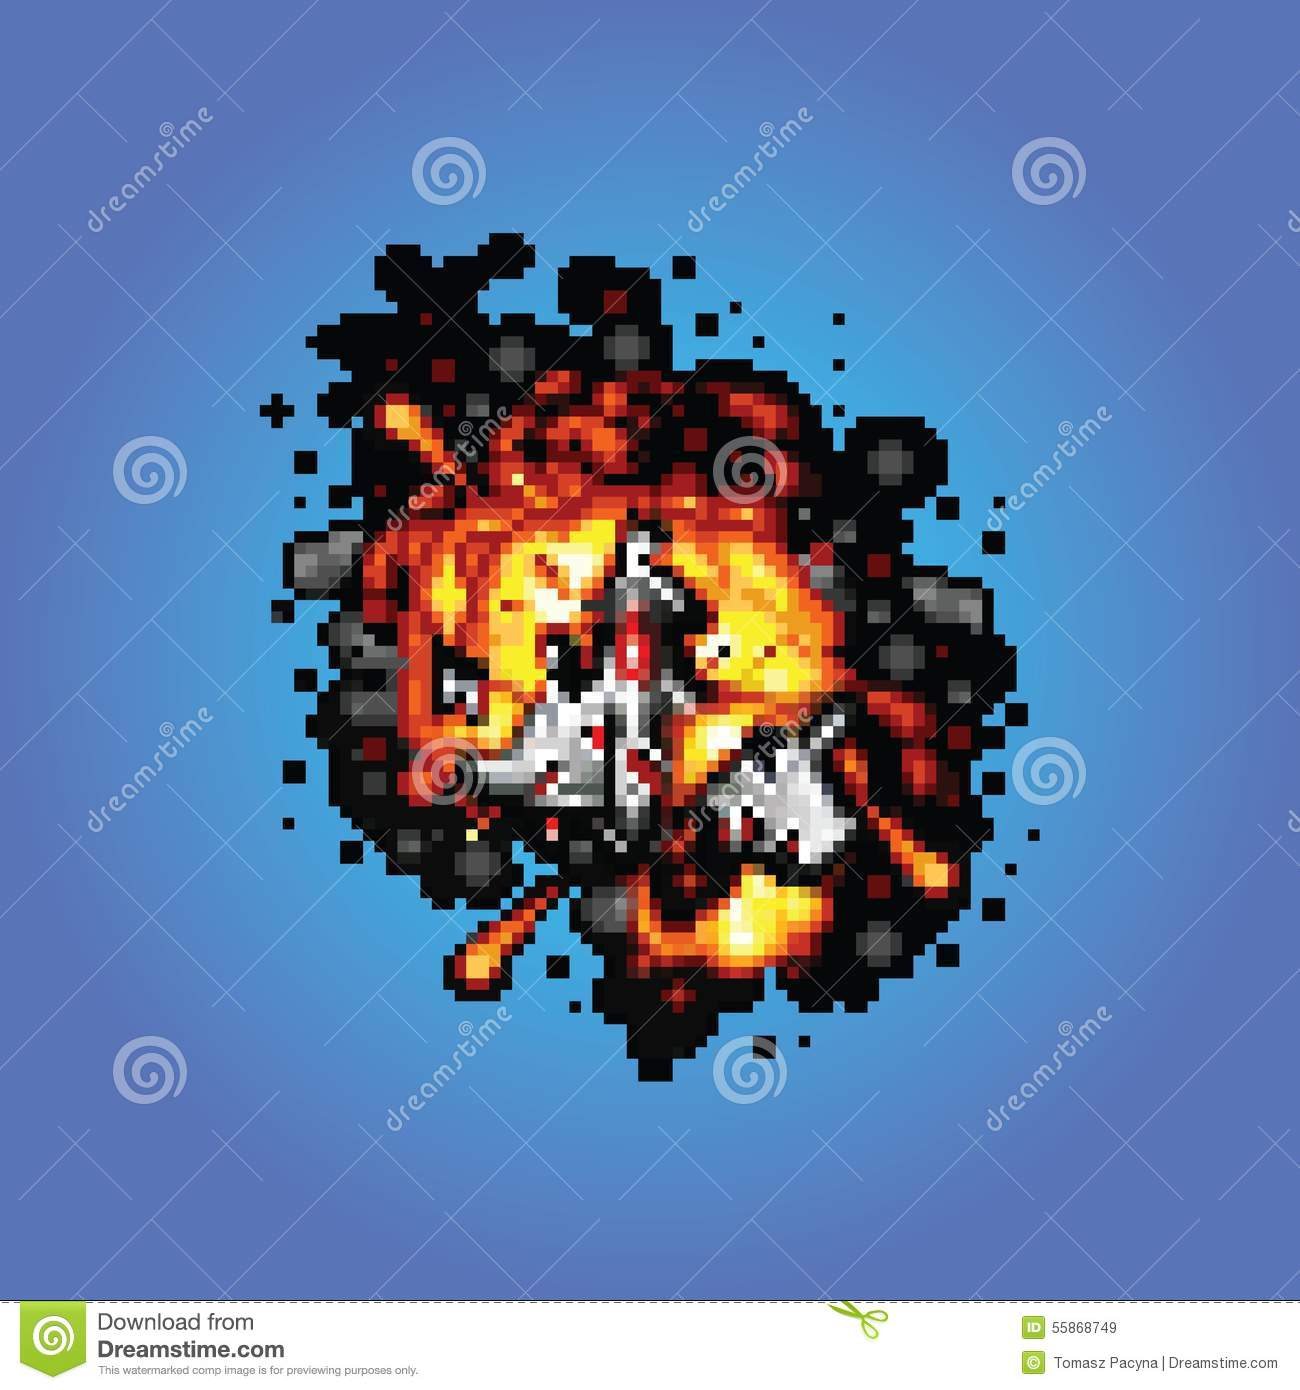 Space Ship On Fire Pixel Art Style Illustration Stock Vector